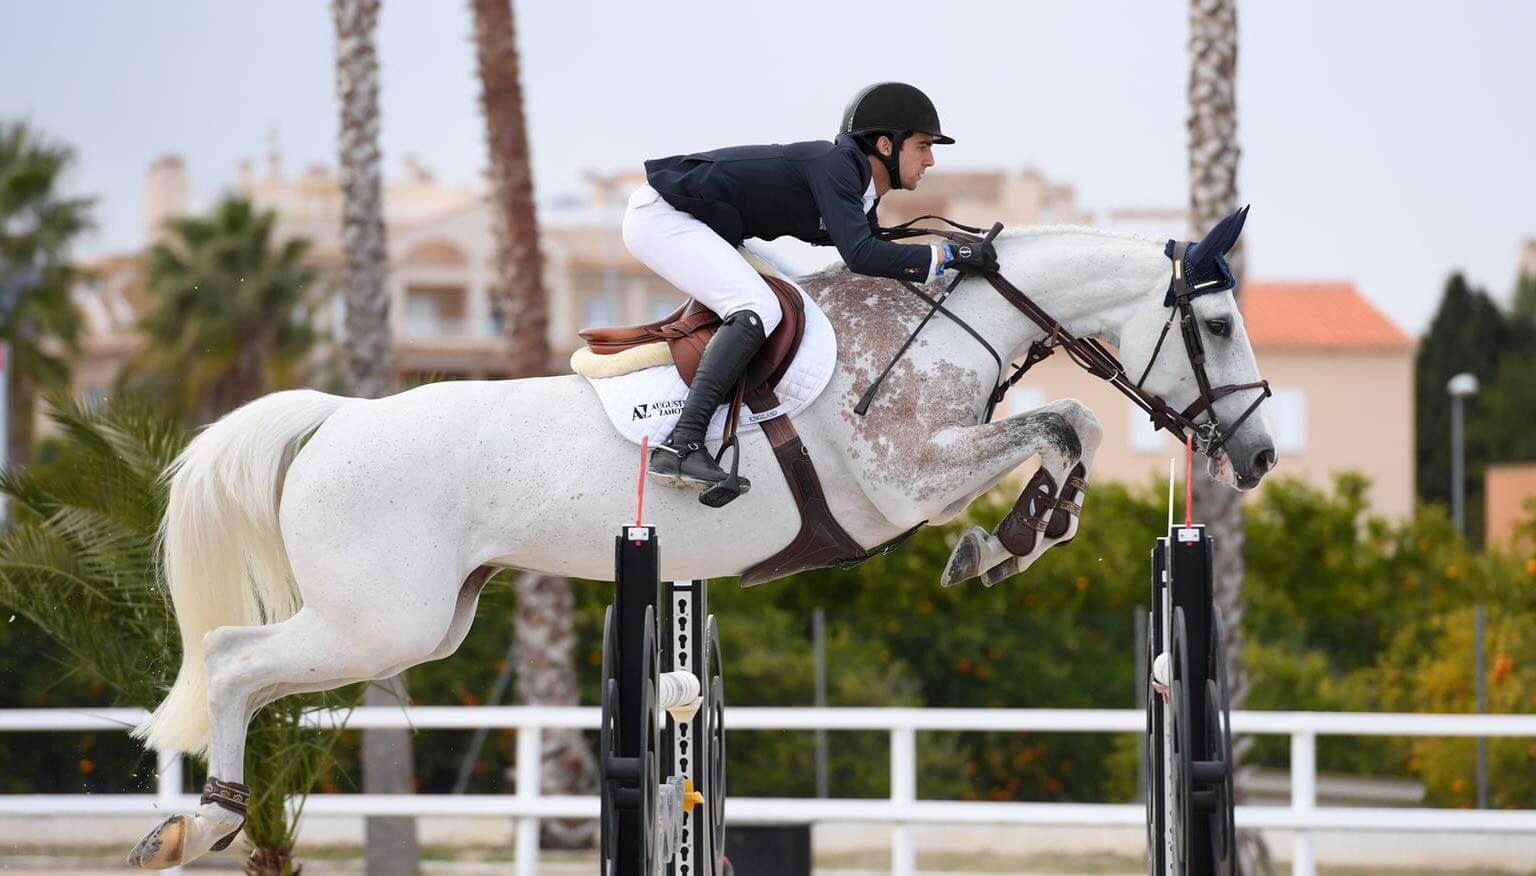 5th place for ISABEAU DE LAUBRY in Oliva Grand Prix